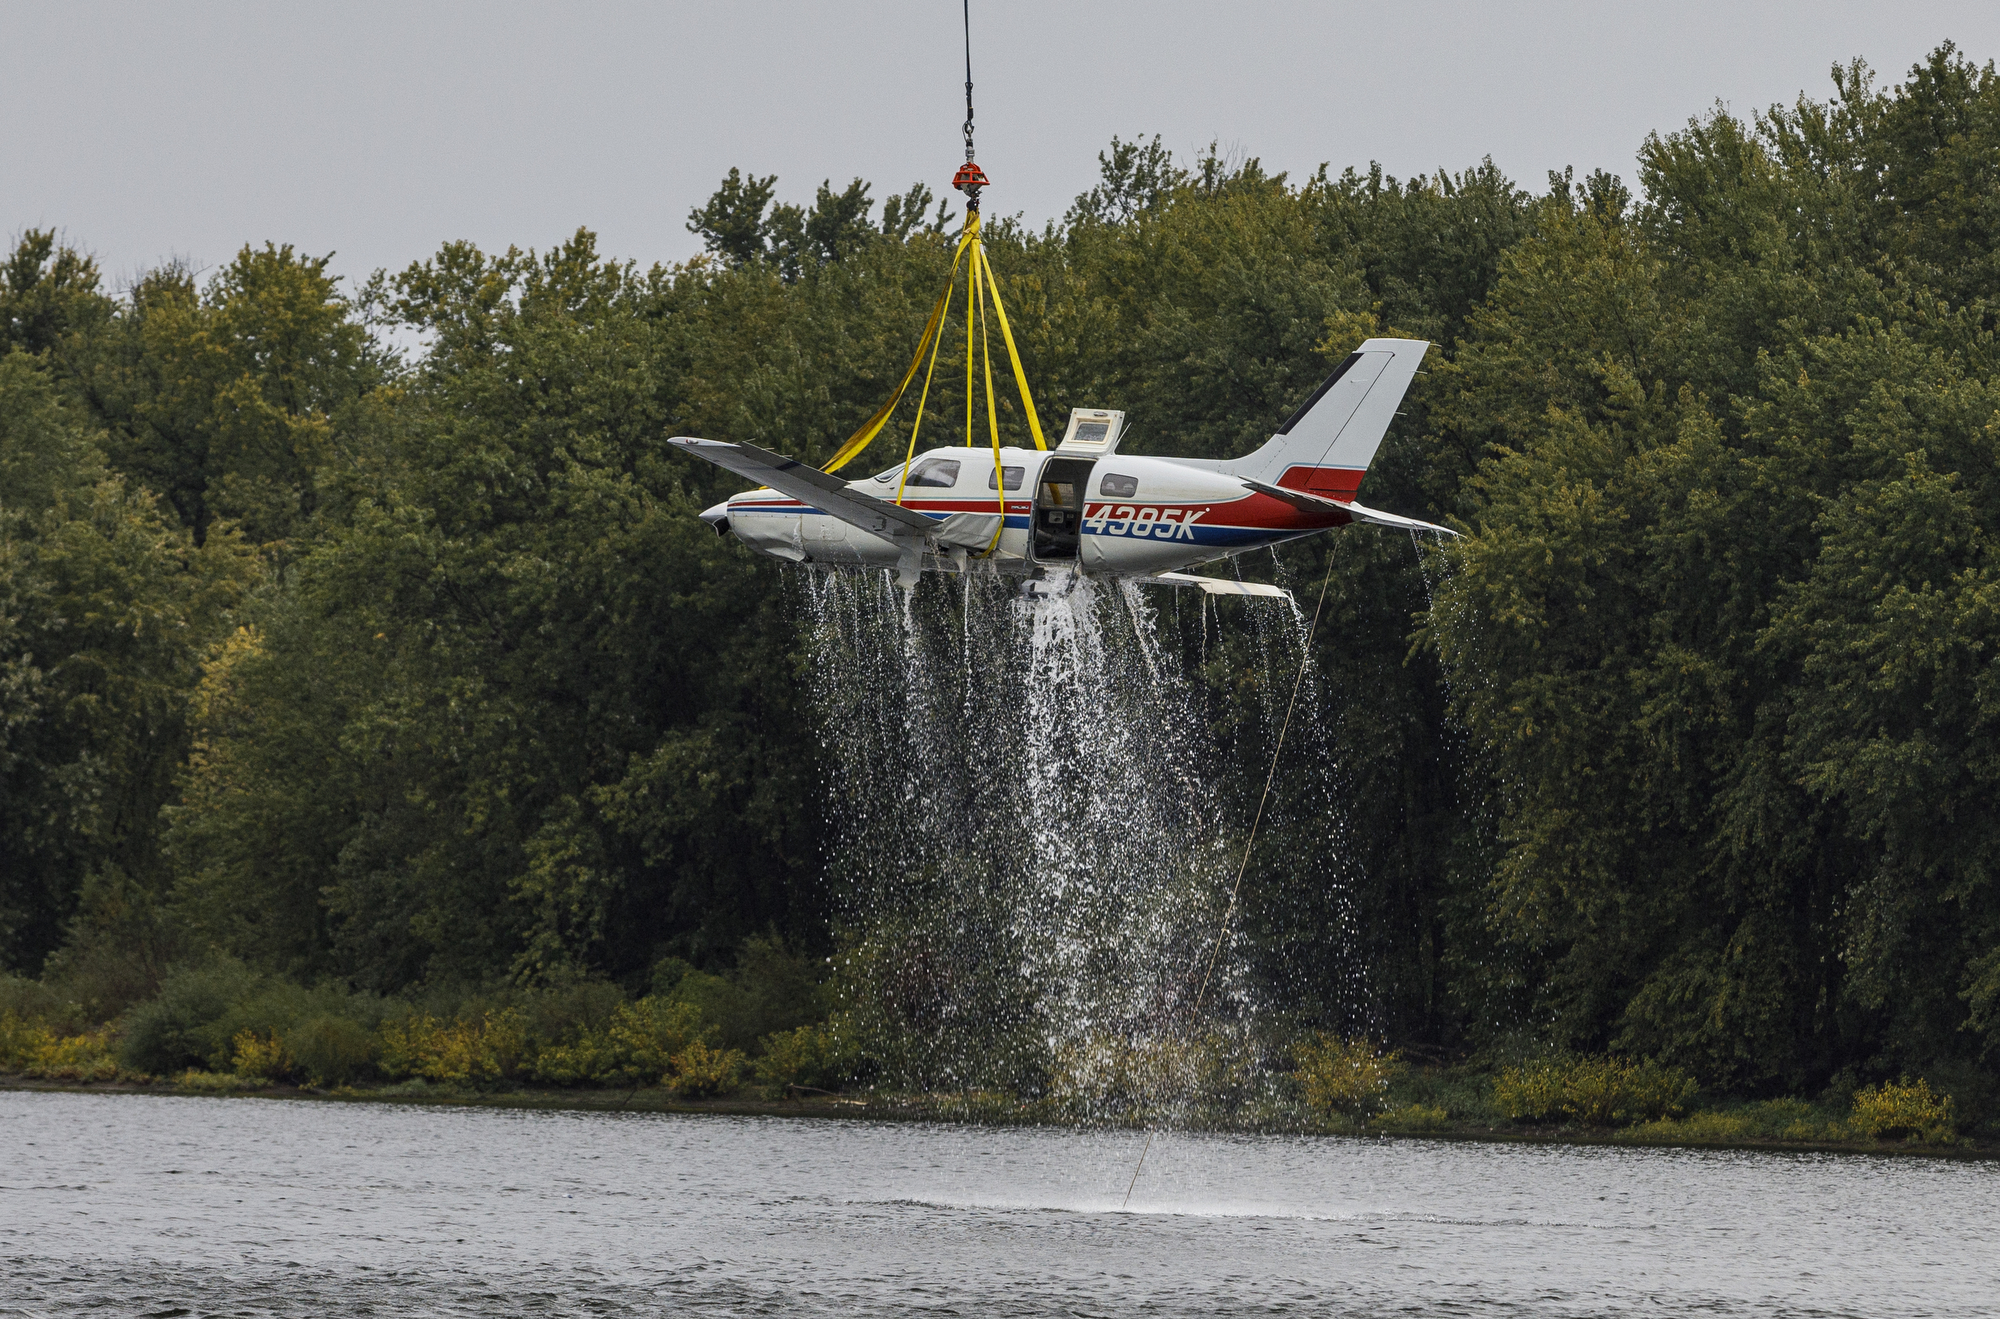 Onlookers impressed by helicopter's quick removal of airplane from Susquehanna River